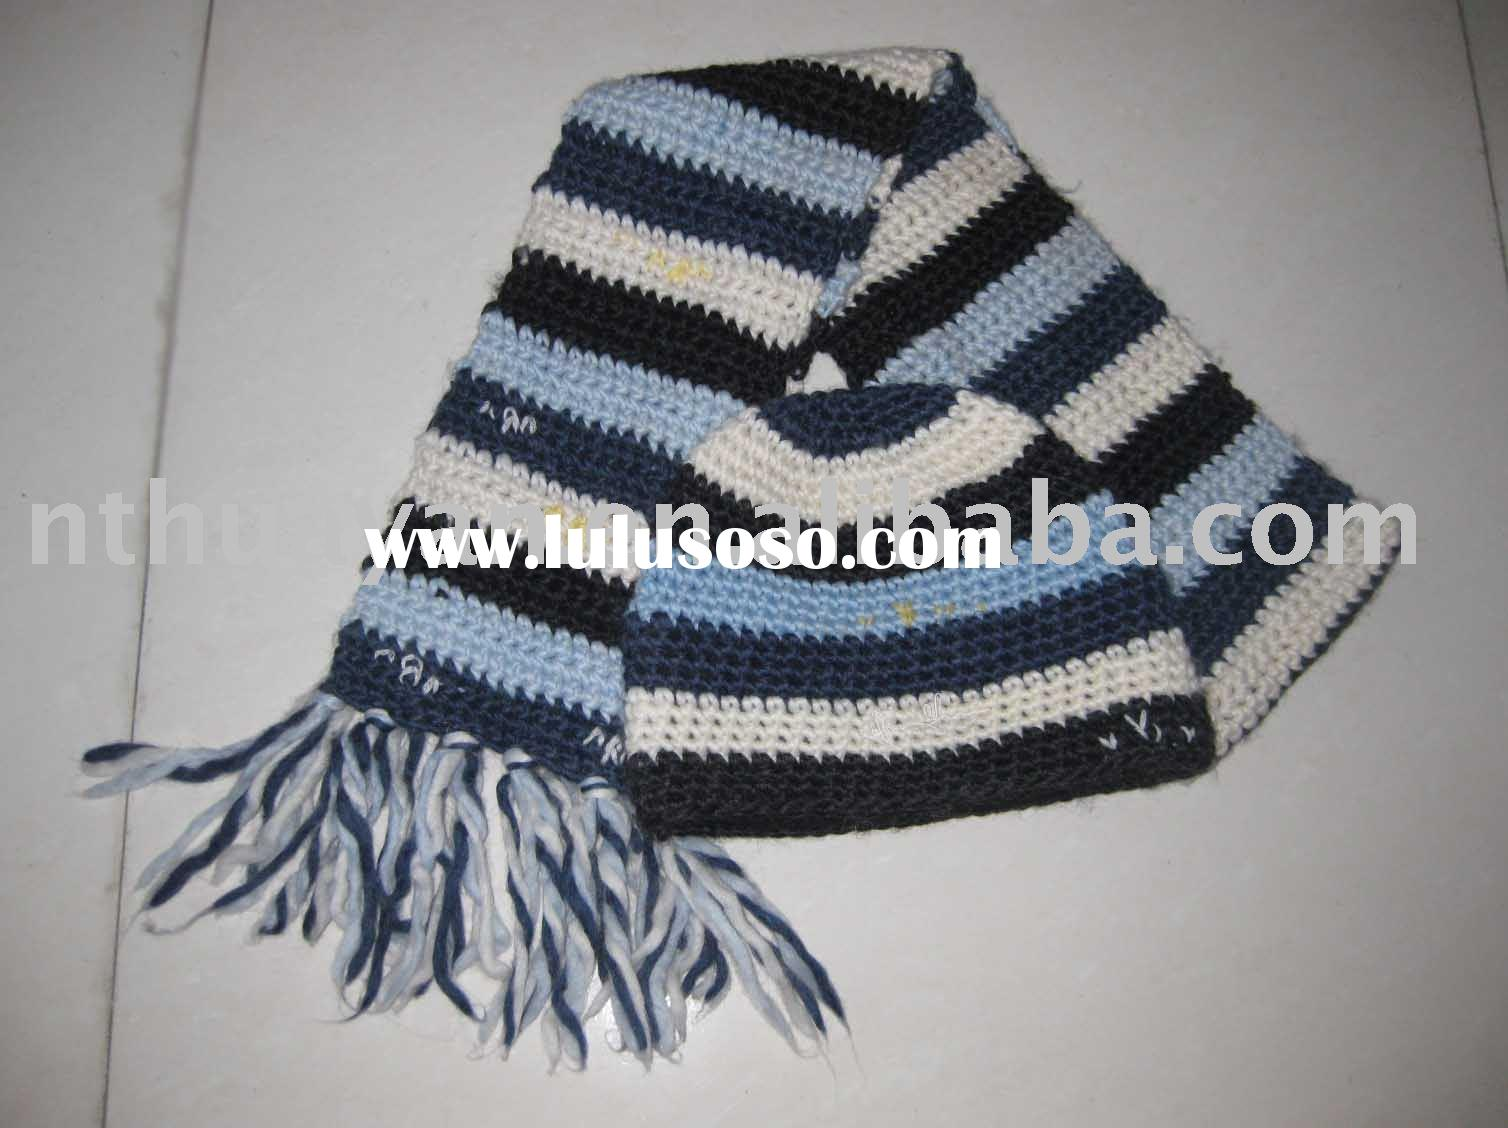 Crochethatsscarfsetsjpg Crochet Hats And Scarves For Kids